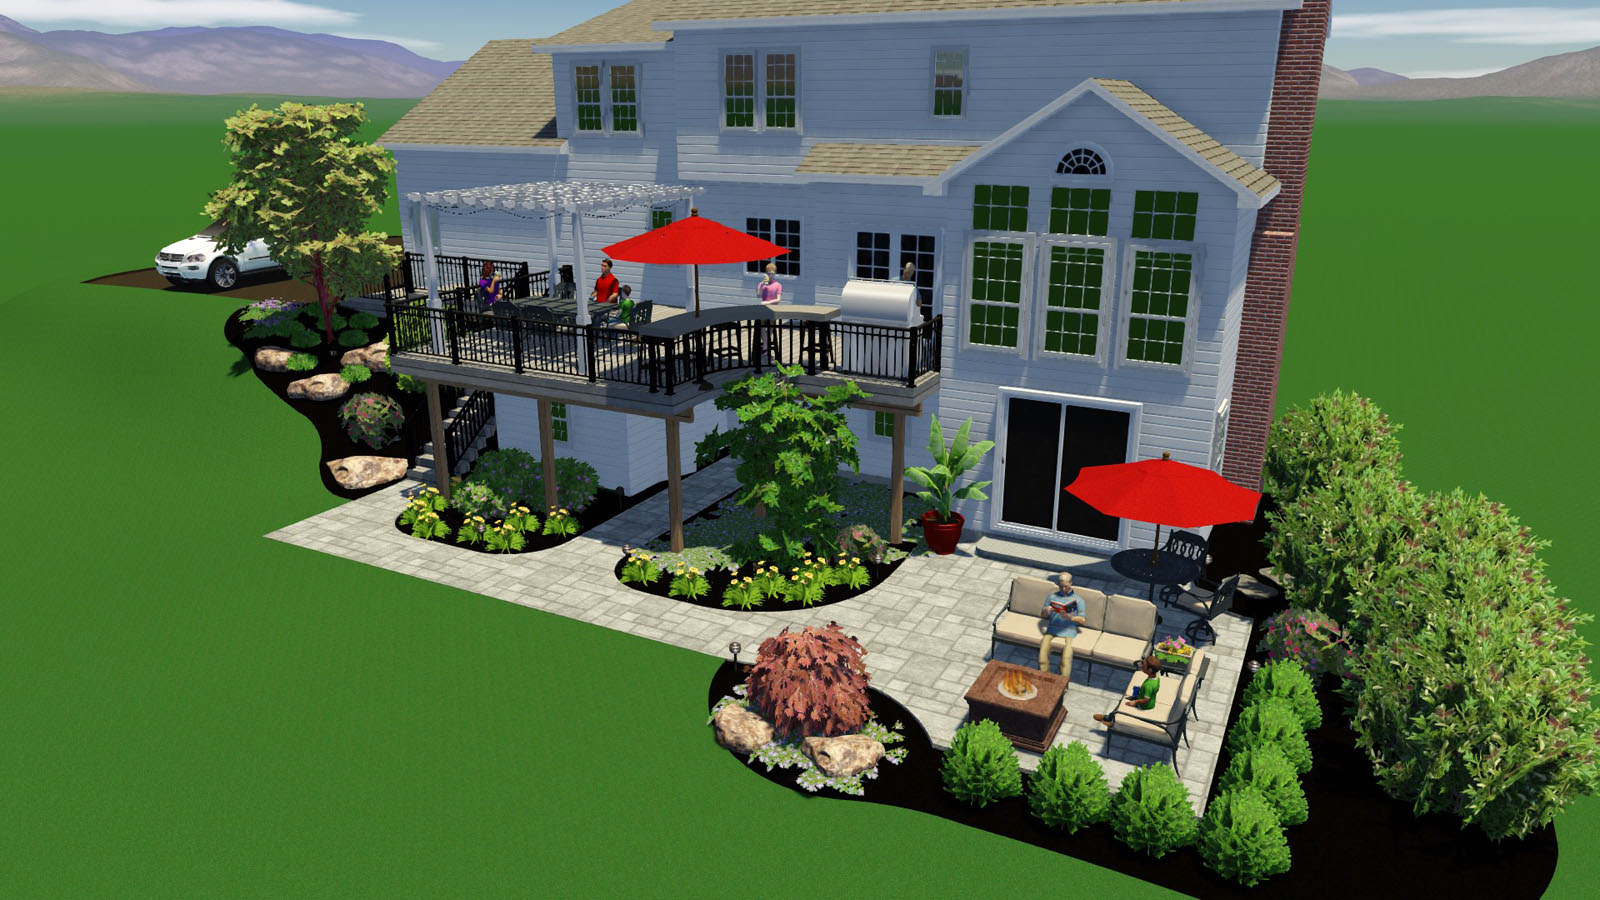 Being able to see the balance of hardscape and landscape within the 3D master plan is a wonderful way for everyone to be on the same page during the design process.